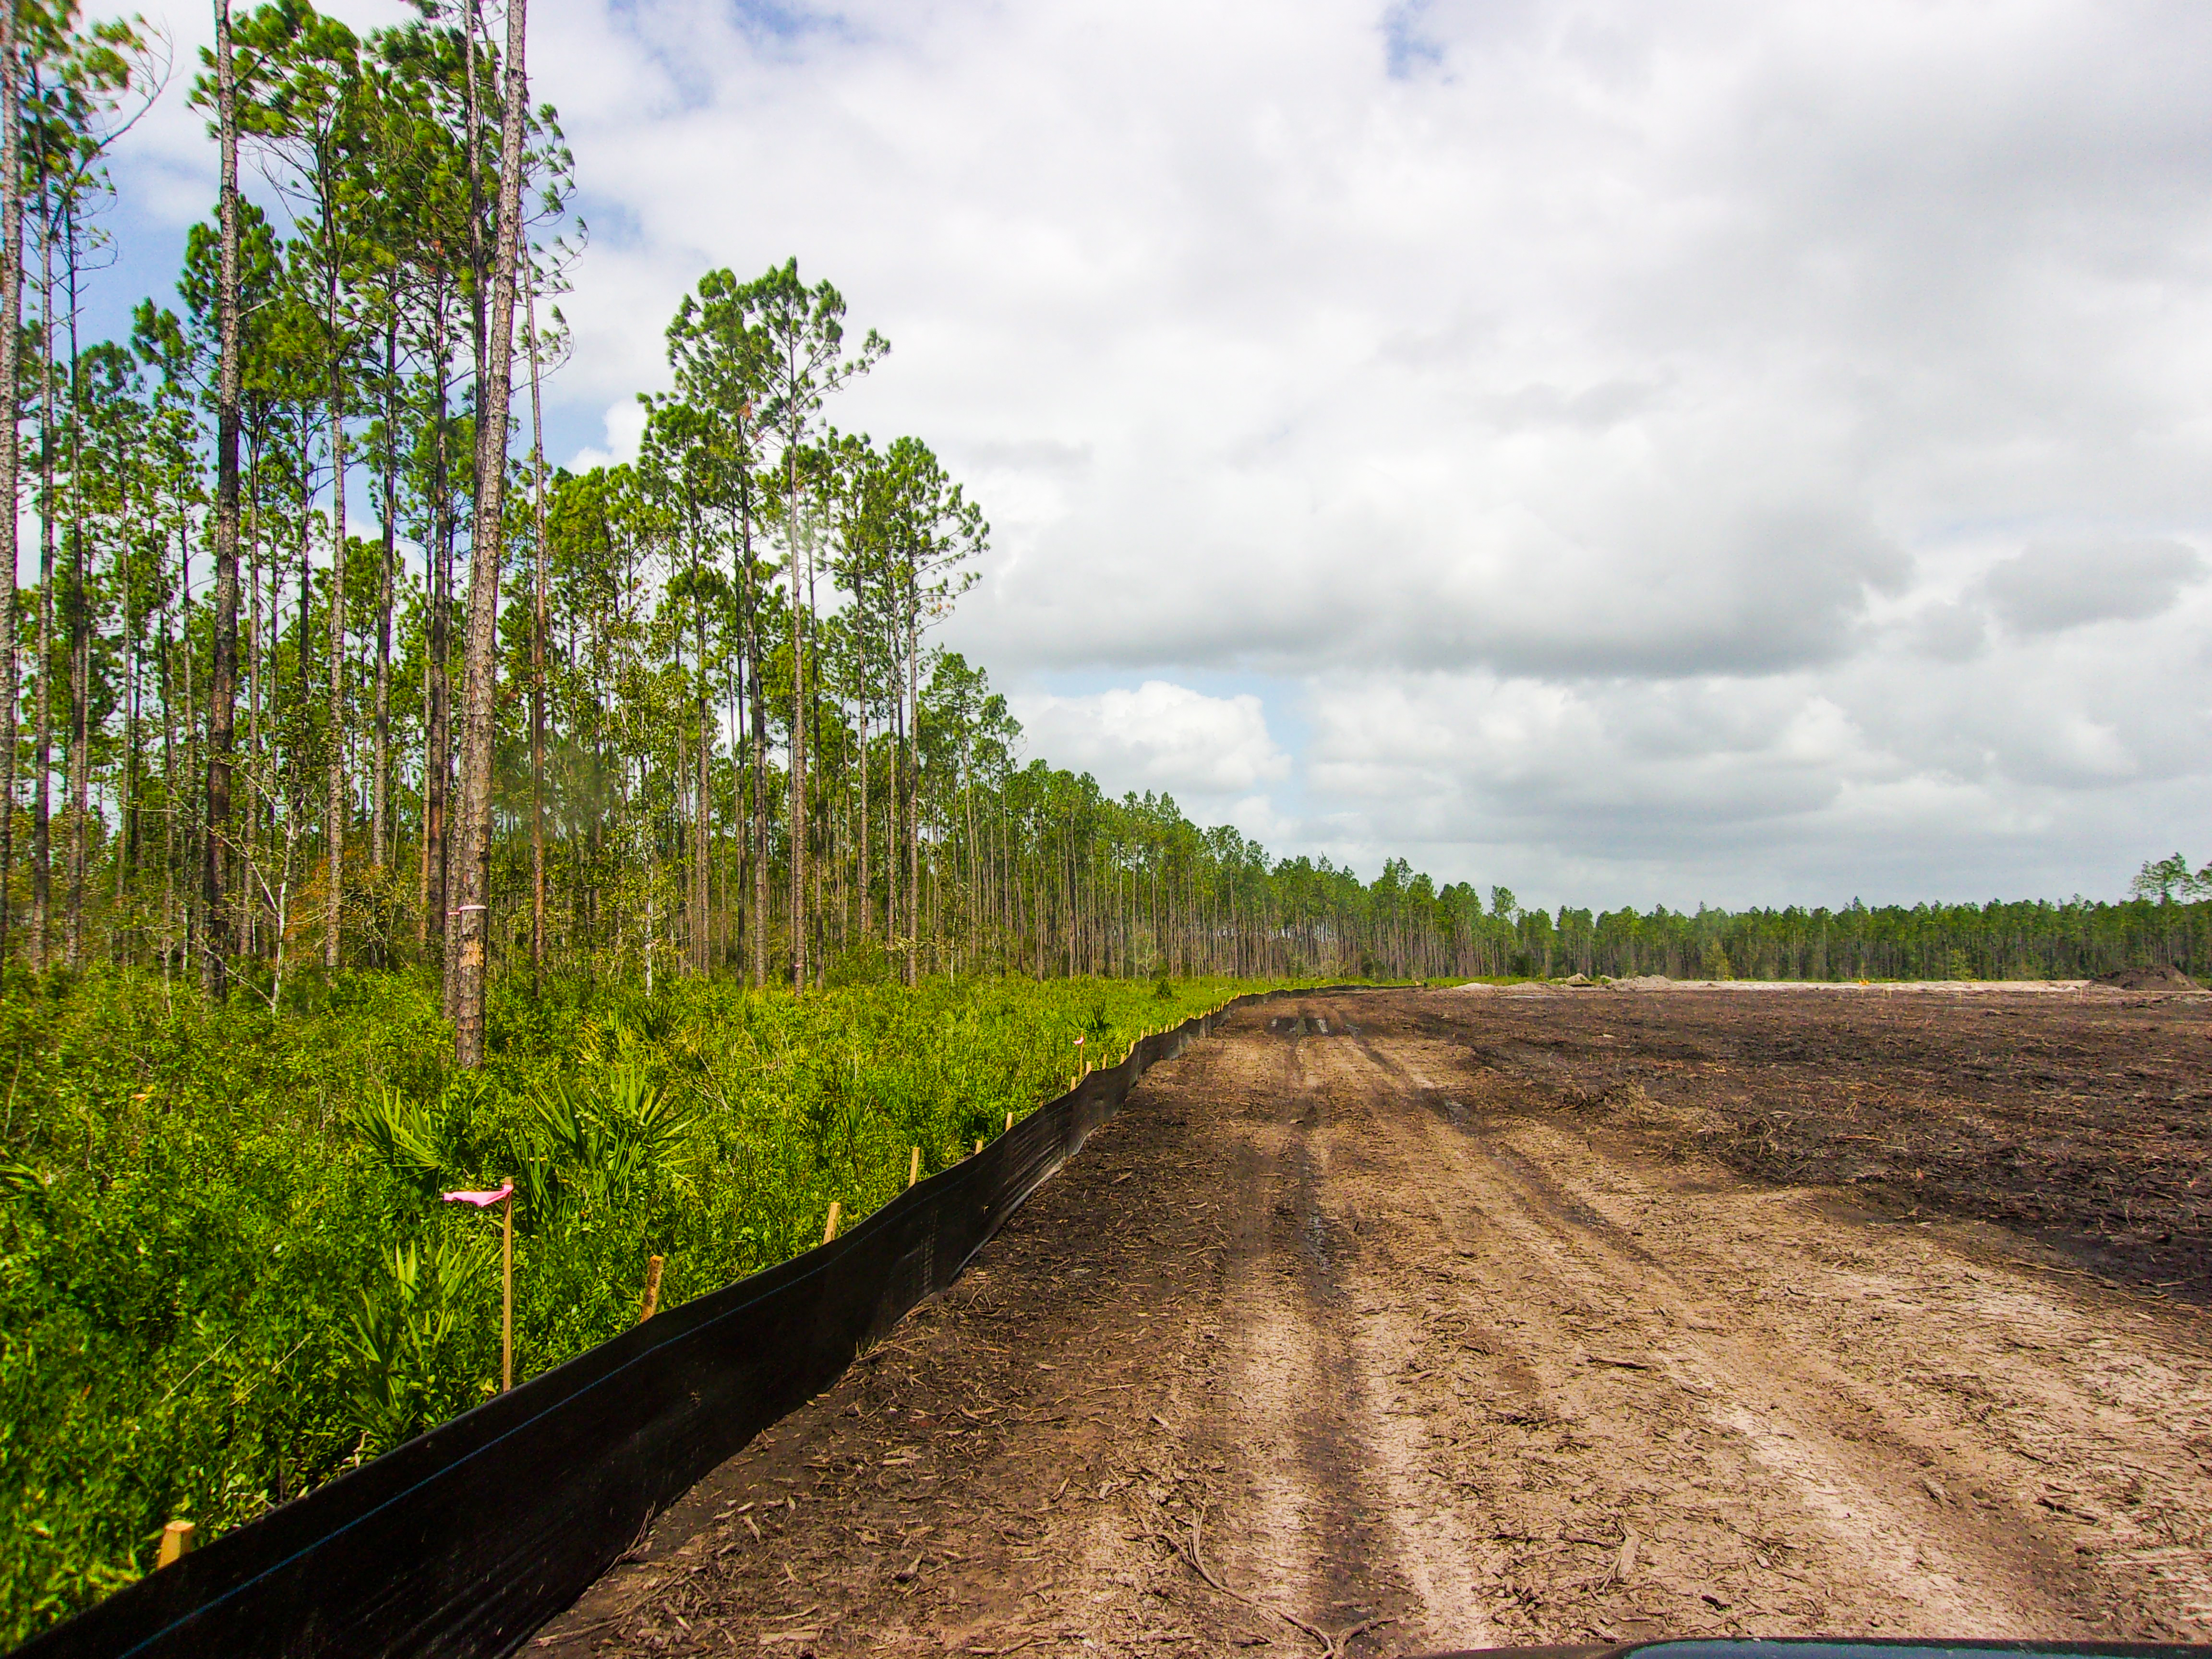 Photo of the Brandy Branch Borrow Pit showing the edge of the parcel with cleared land to the right and trees to the left